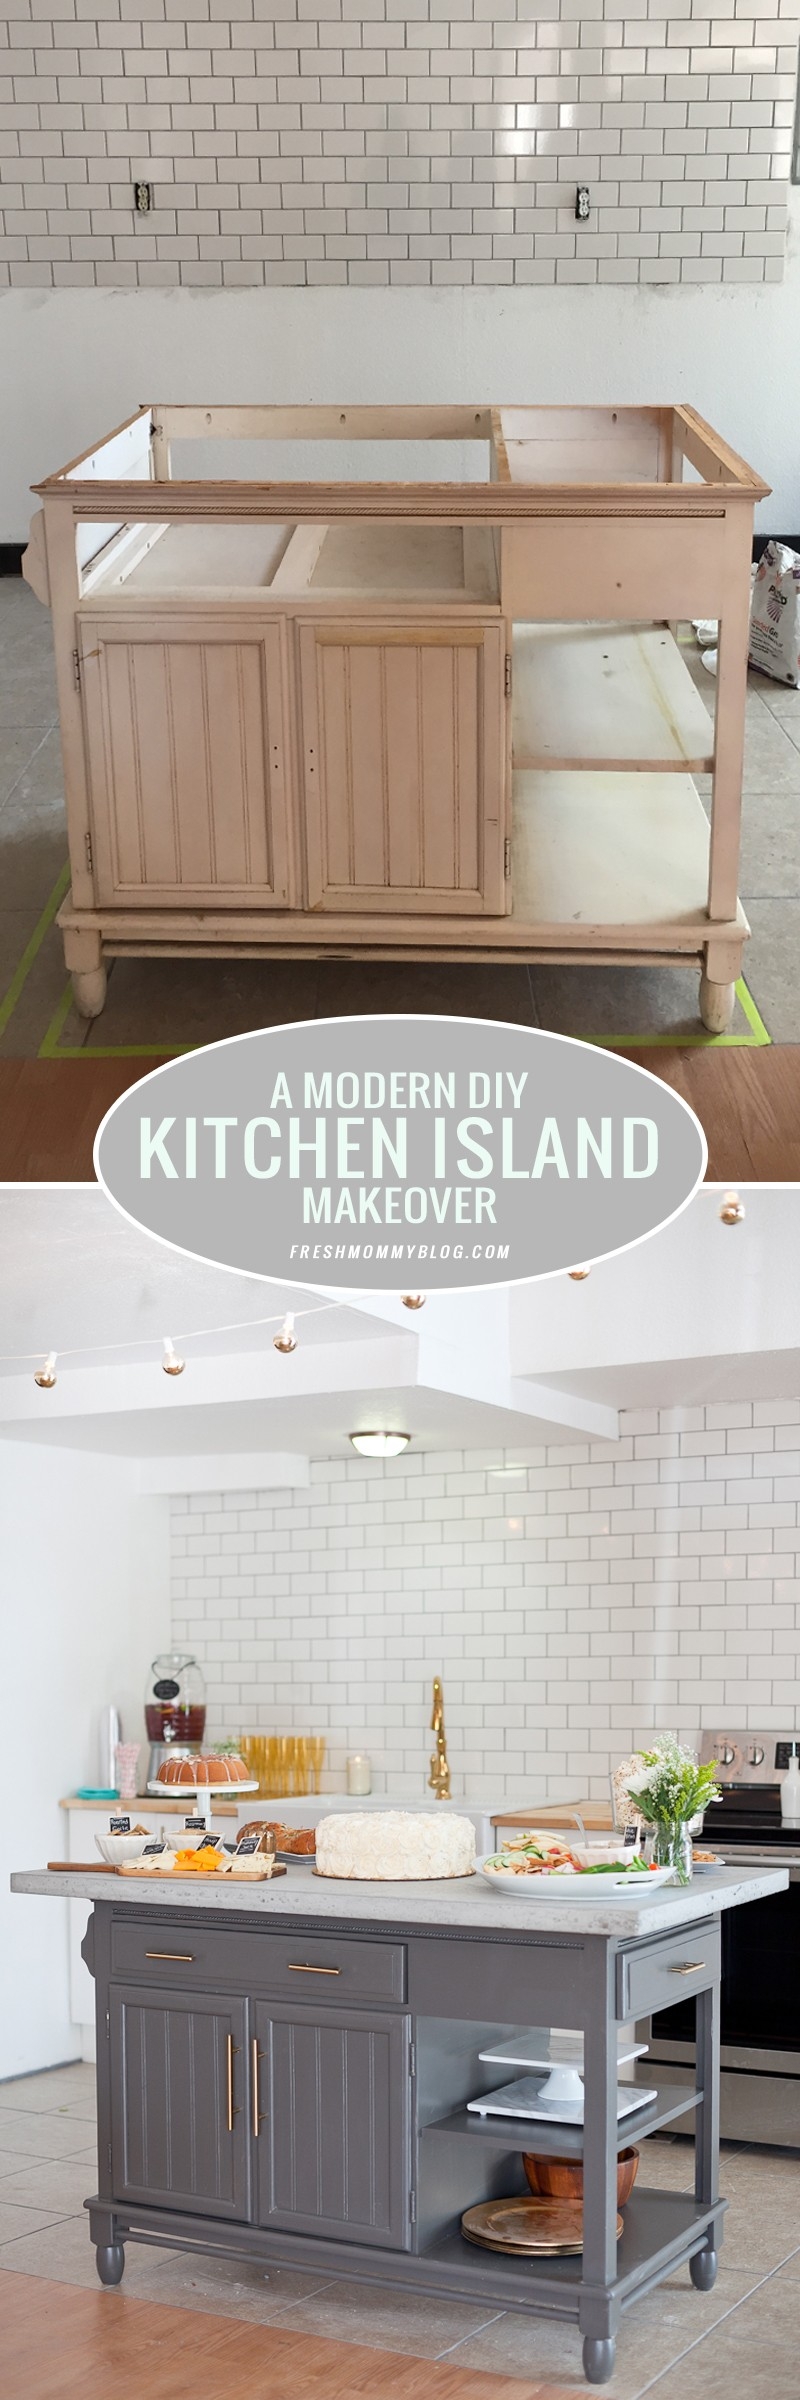 A Modern DIY Kitchen Island Makeover Before and After